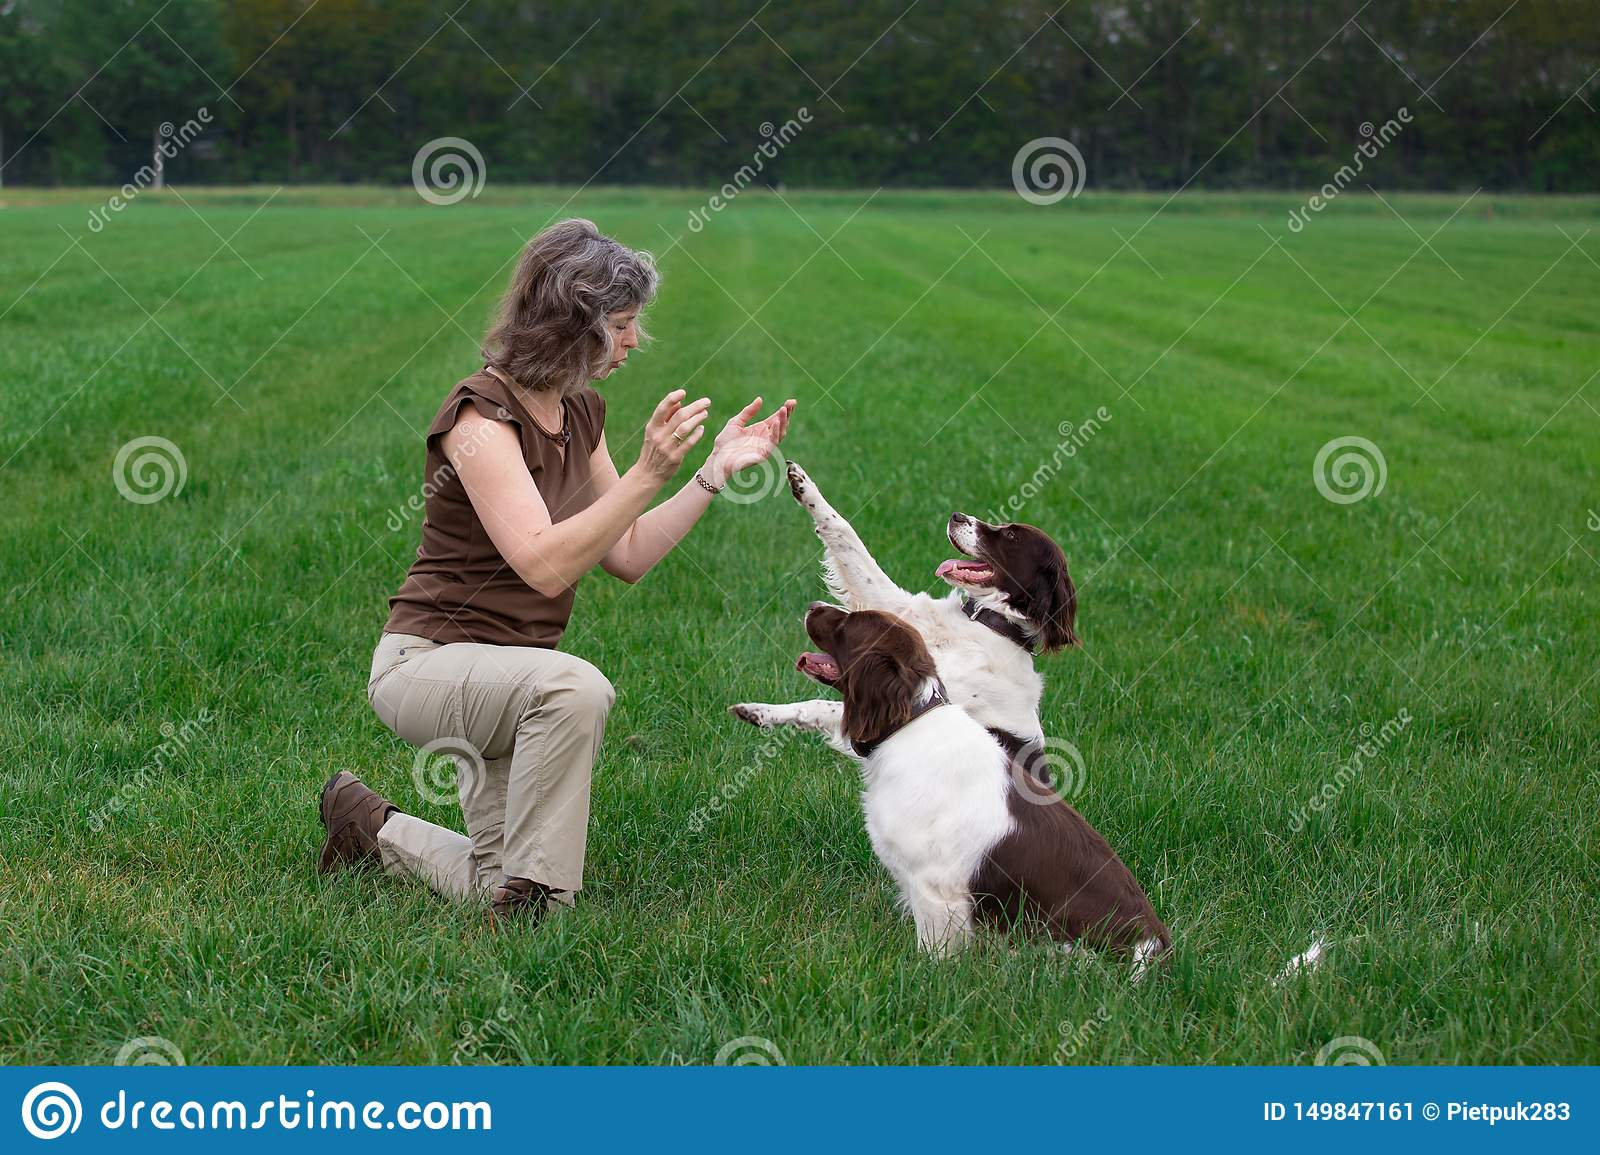 Woman clapping hands for dogs which give her a paw